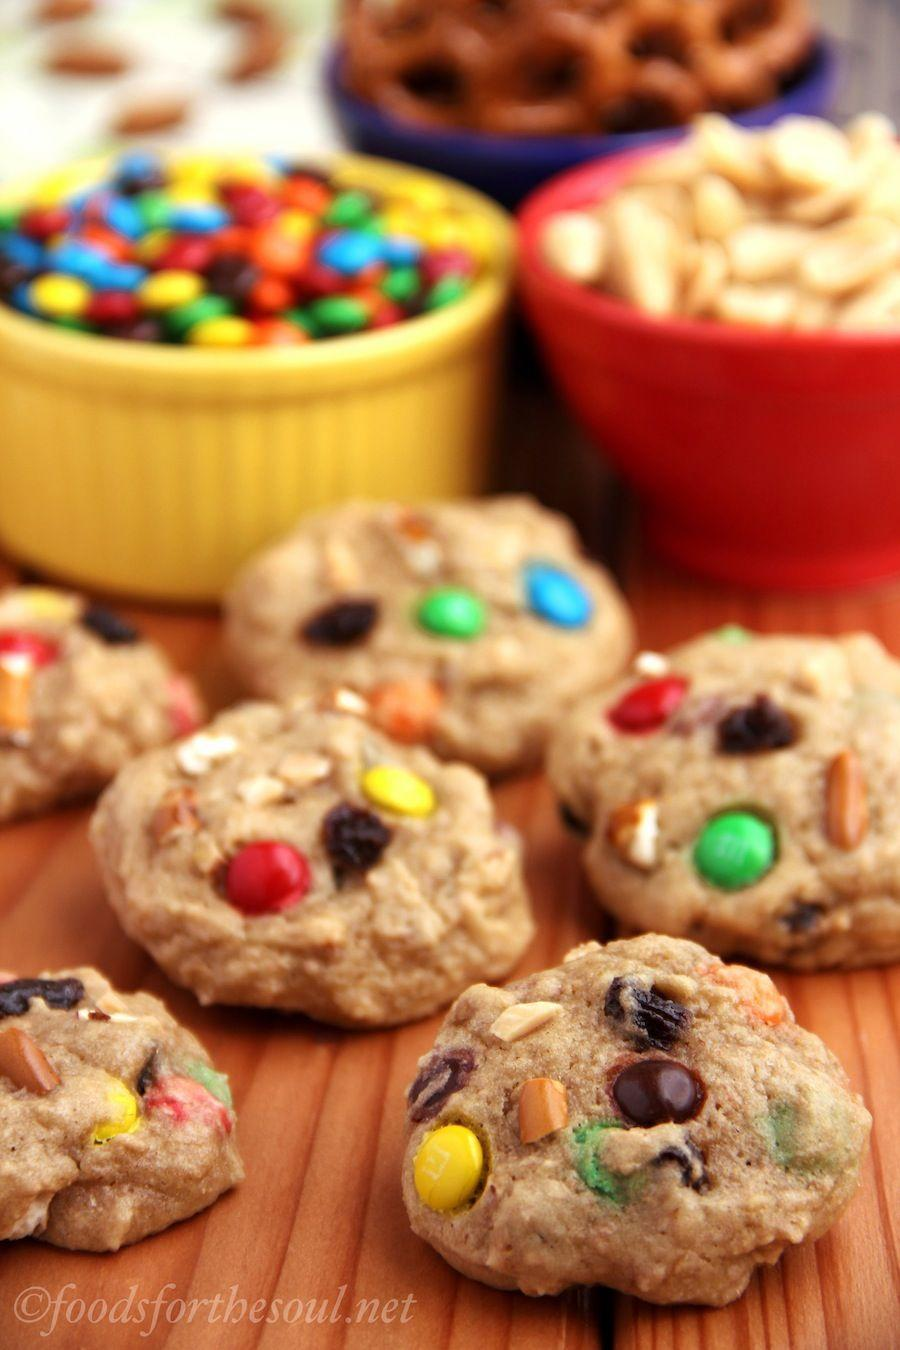 """<p>No, edibles don't quite take the cake in Colorado ... yet. Trail mix cookies, however, are a popular treat that works for holiday celebrations as well as on-the-go snacks for a hike in the mountains.</p><p>Get the recipe from <a href=""""https://amyshealthybaking.com/blog/2013/06/09/trail-mix-cookies/"""" rel=""""nofollow noopener"""" target=""""_blank"""" data-ylk=""""slk:Amy's Healthy Baking"""" class=""""link rapid-noclick-resp"""">Amy's Healthy Baking</a>.</p>"""